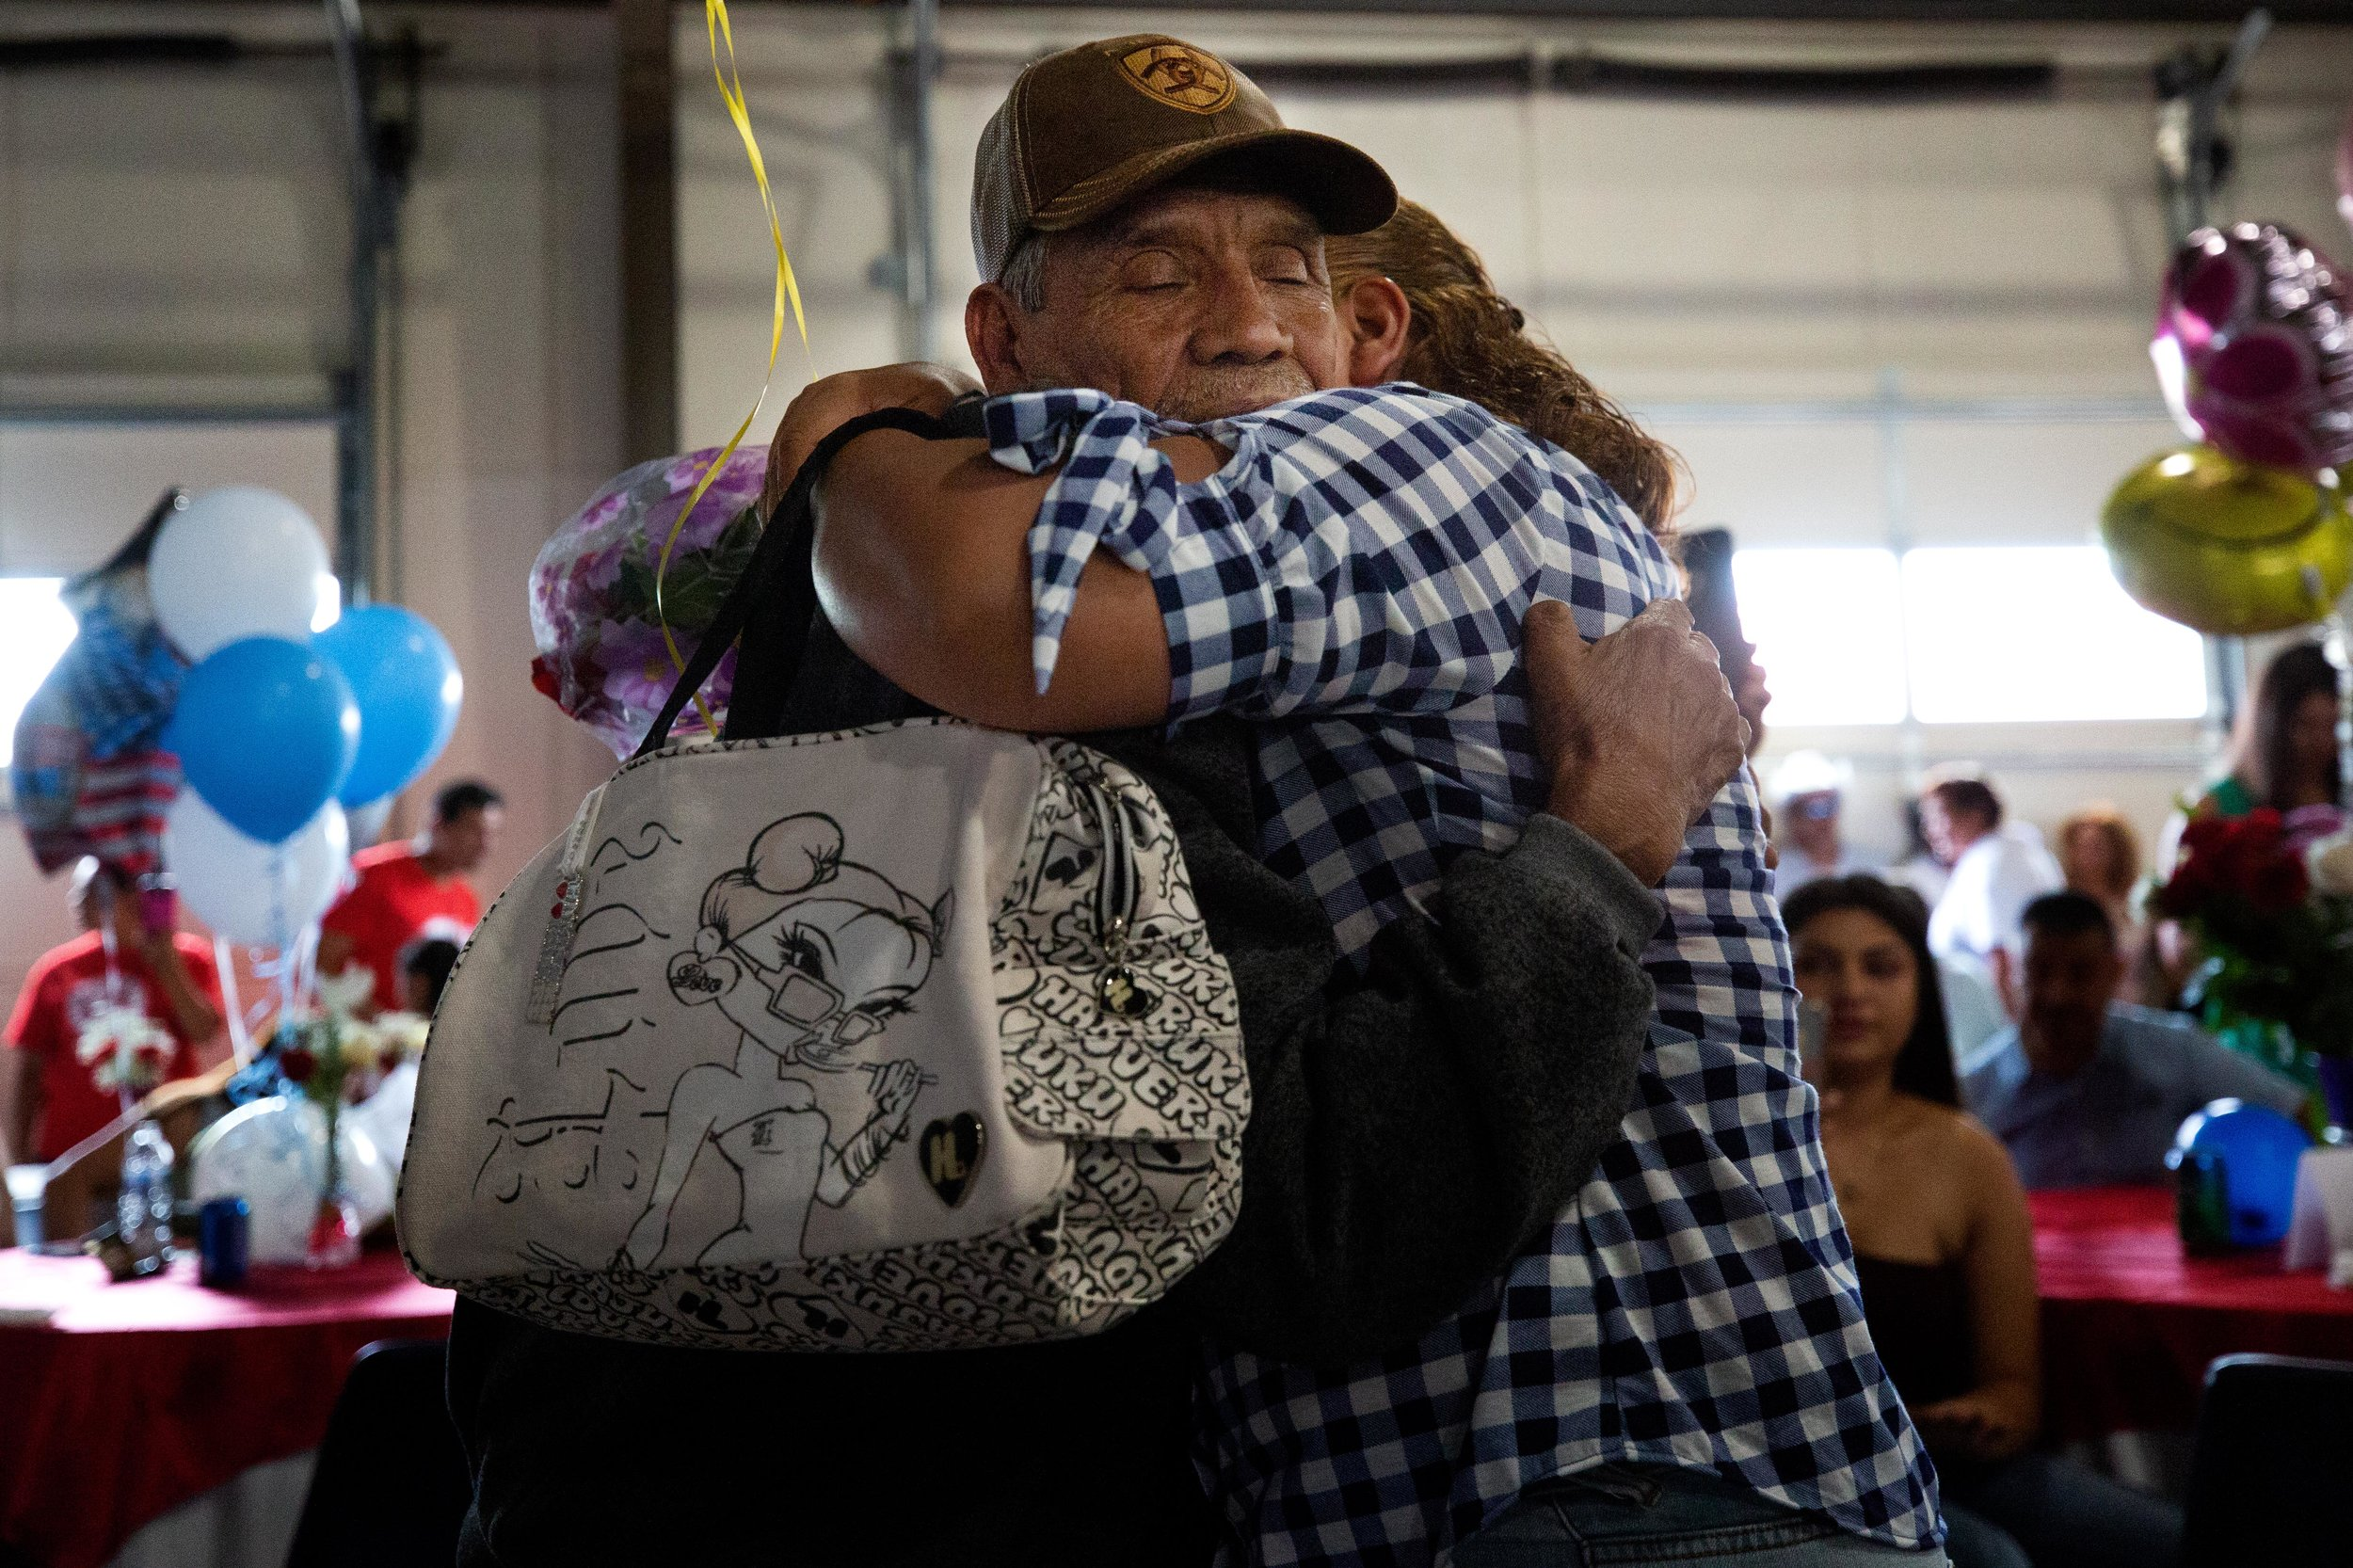 ROUND ROCK, TX. August 10, 2018. After decades apart, Mexican parents reunite with their undocumented children living in Round Rock, Texas. With help from the Consulate General of Mexico in Austin and the government of the State of Michoacán, each parent received a tourist visa, which will allow them to travel to the U.S. for six months at a time. A program called Palomas Mensajeras (homing pigeons) came to the Austin area to reunite the families. Montinique Monroe for KUT News